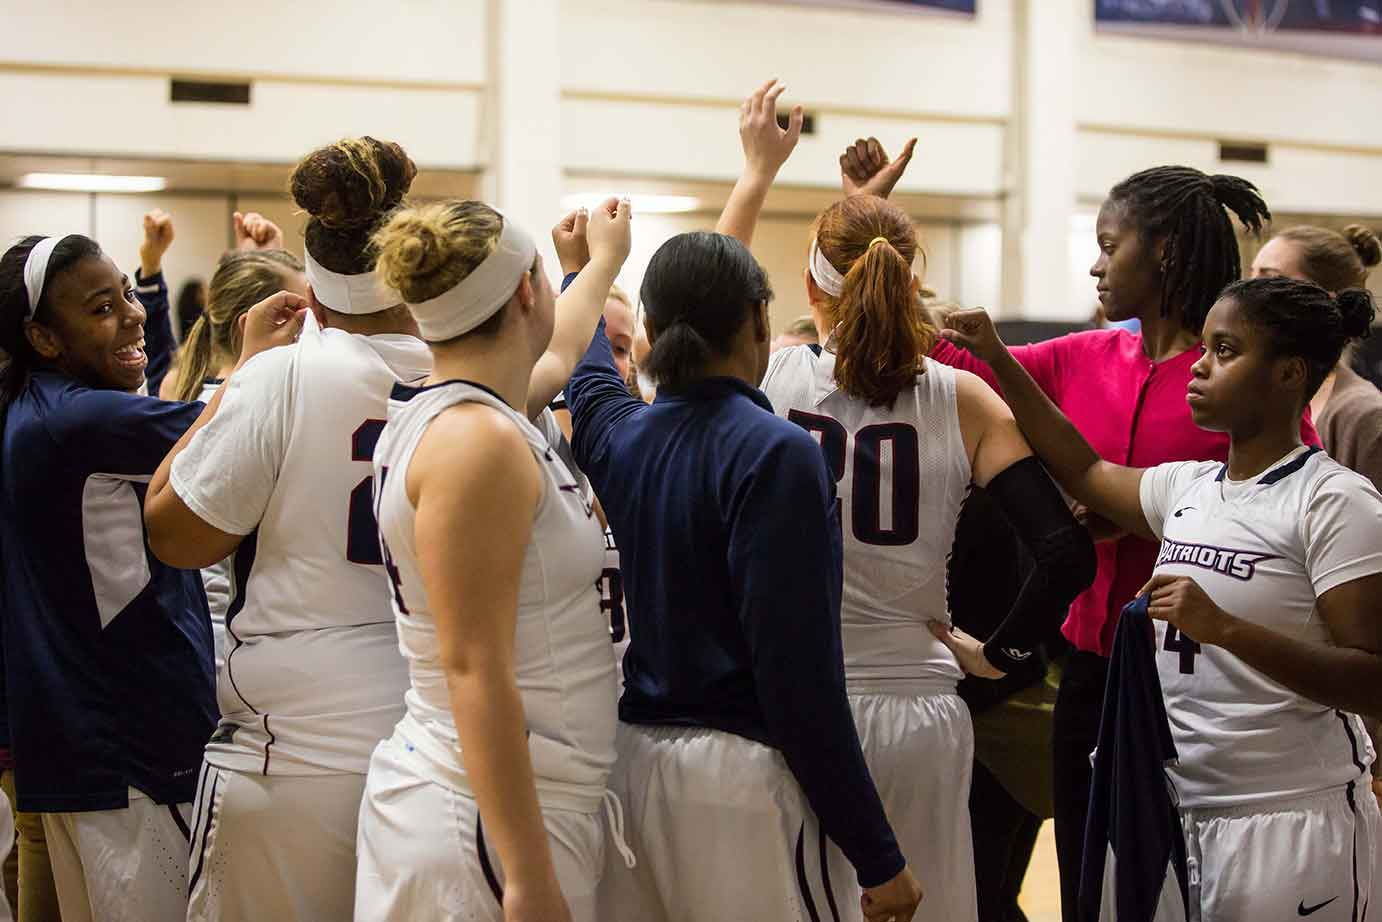 Girls Basketball team group huddle before a game